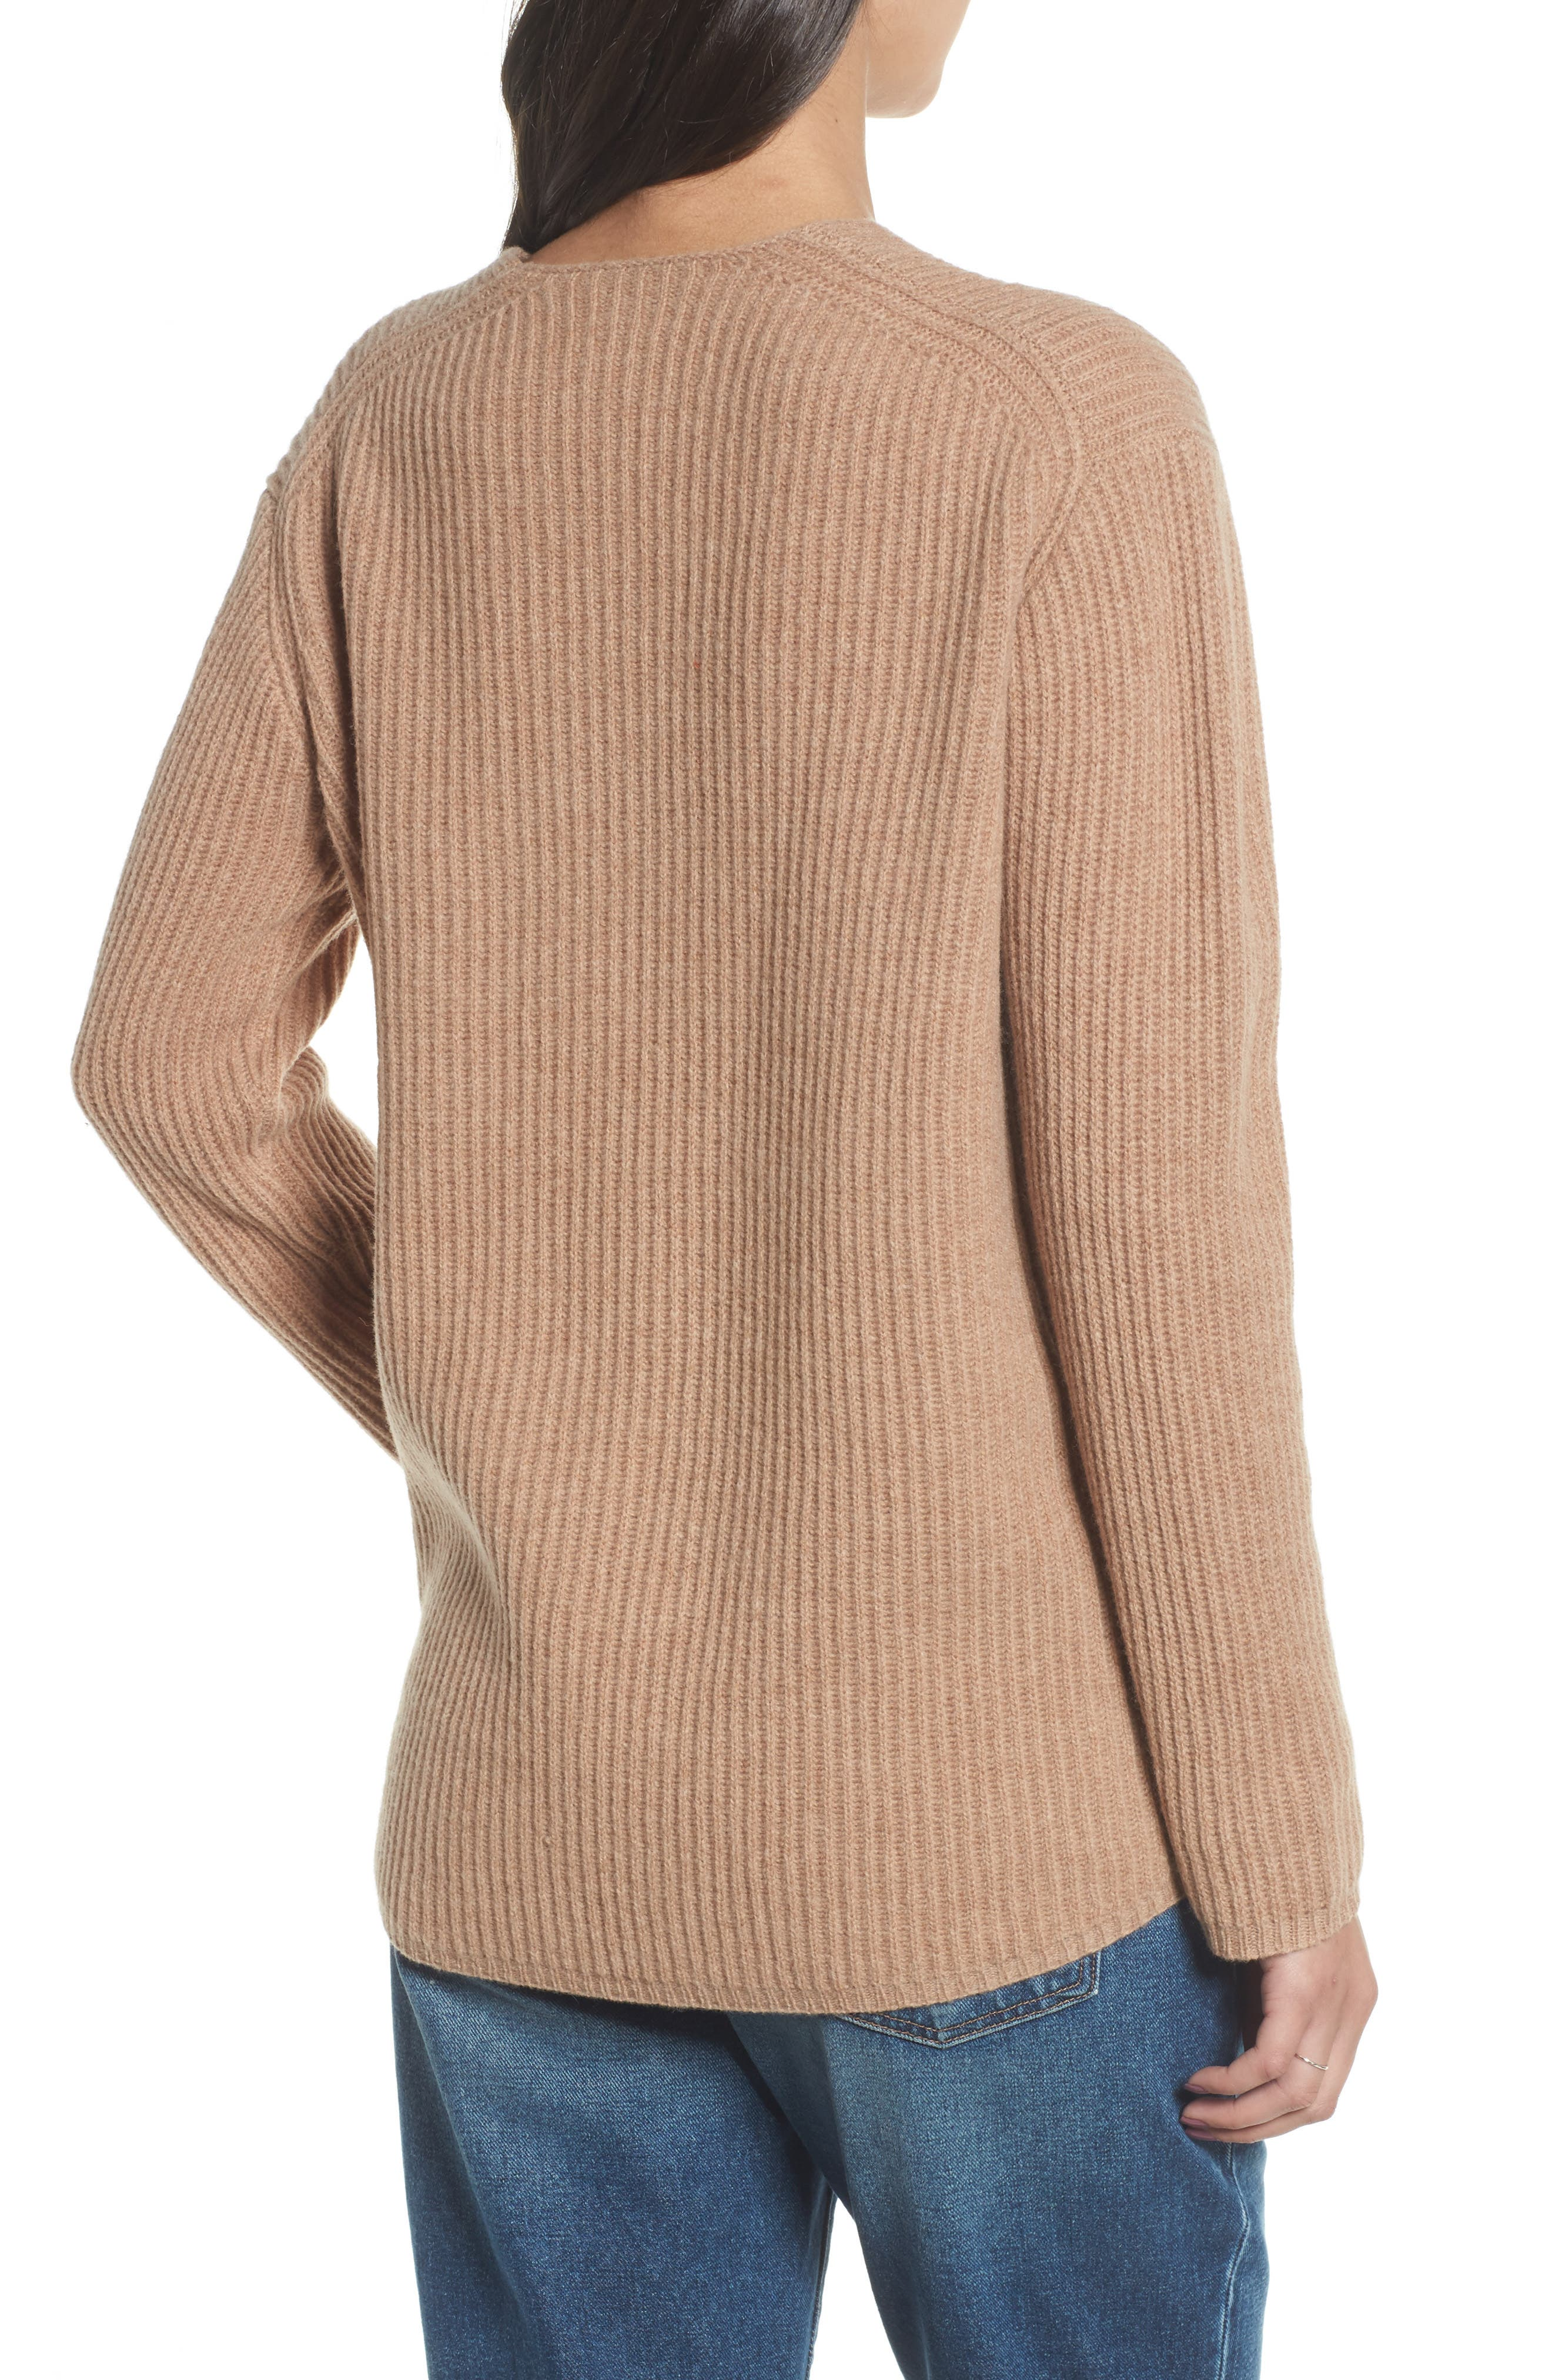 Woodside Pullover Sweater,                             Alternate thumbnail 9, color,